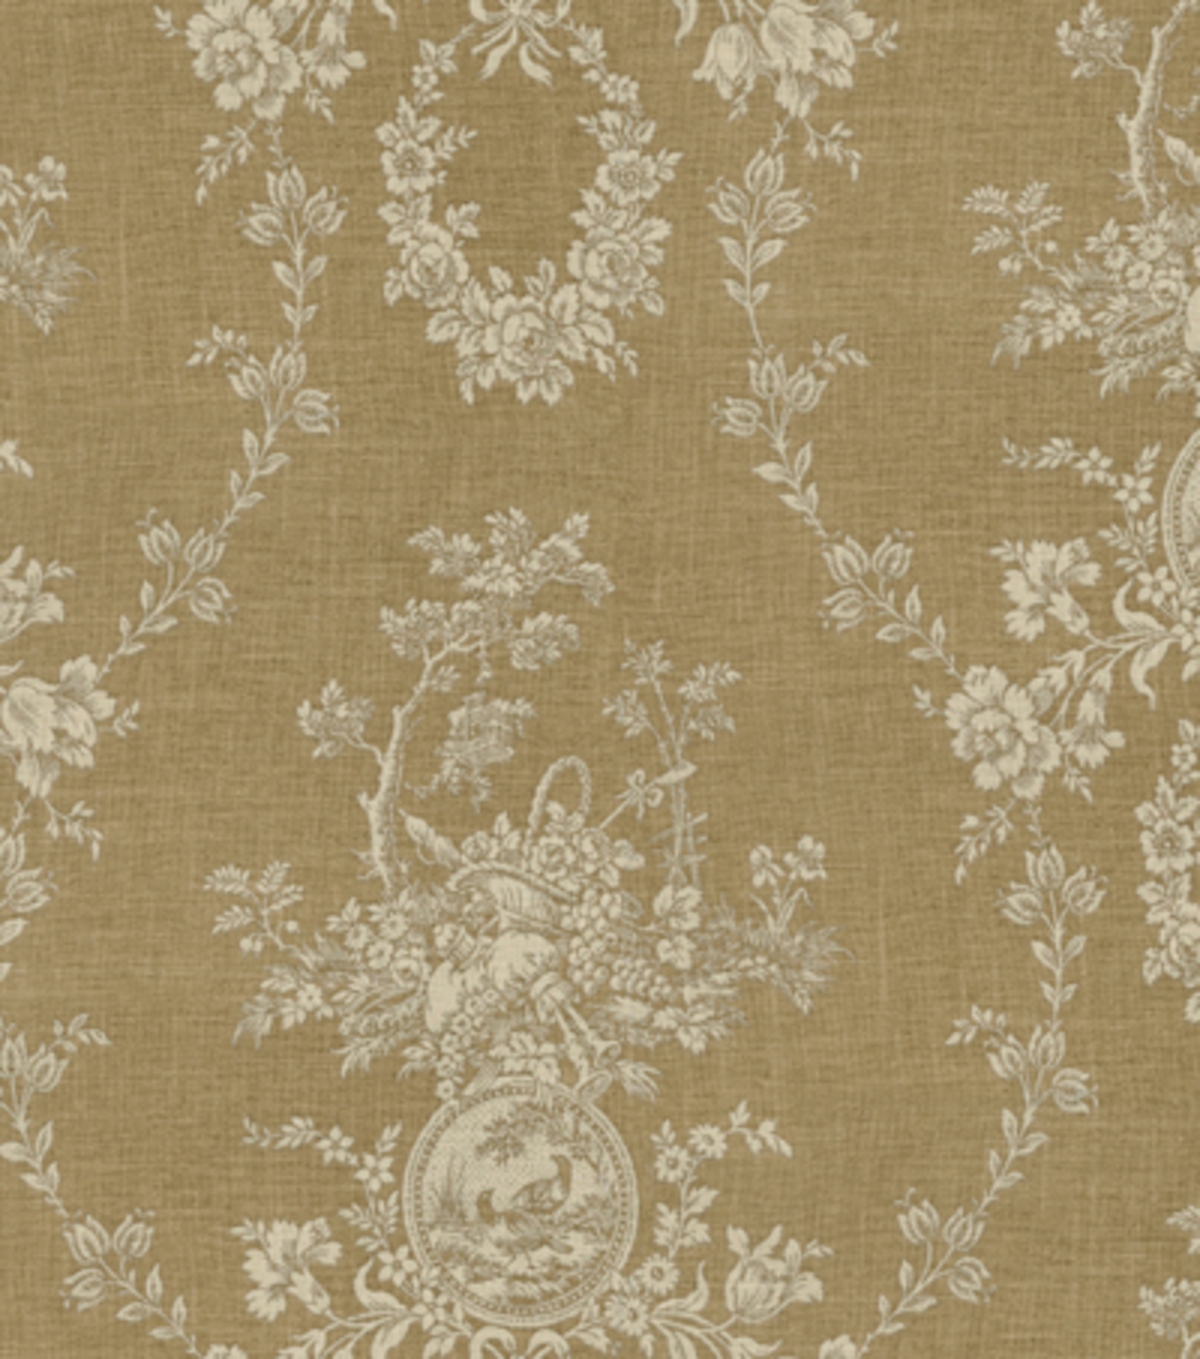 "Home Decor 8""x8"" Fabric Swatch-Waverly Country House /Linen"